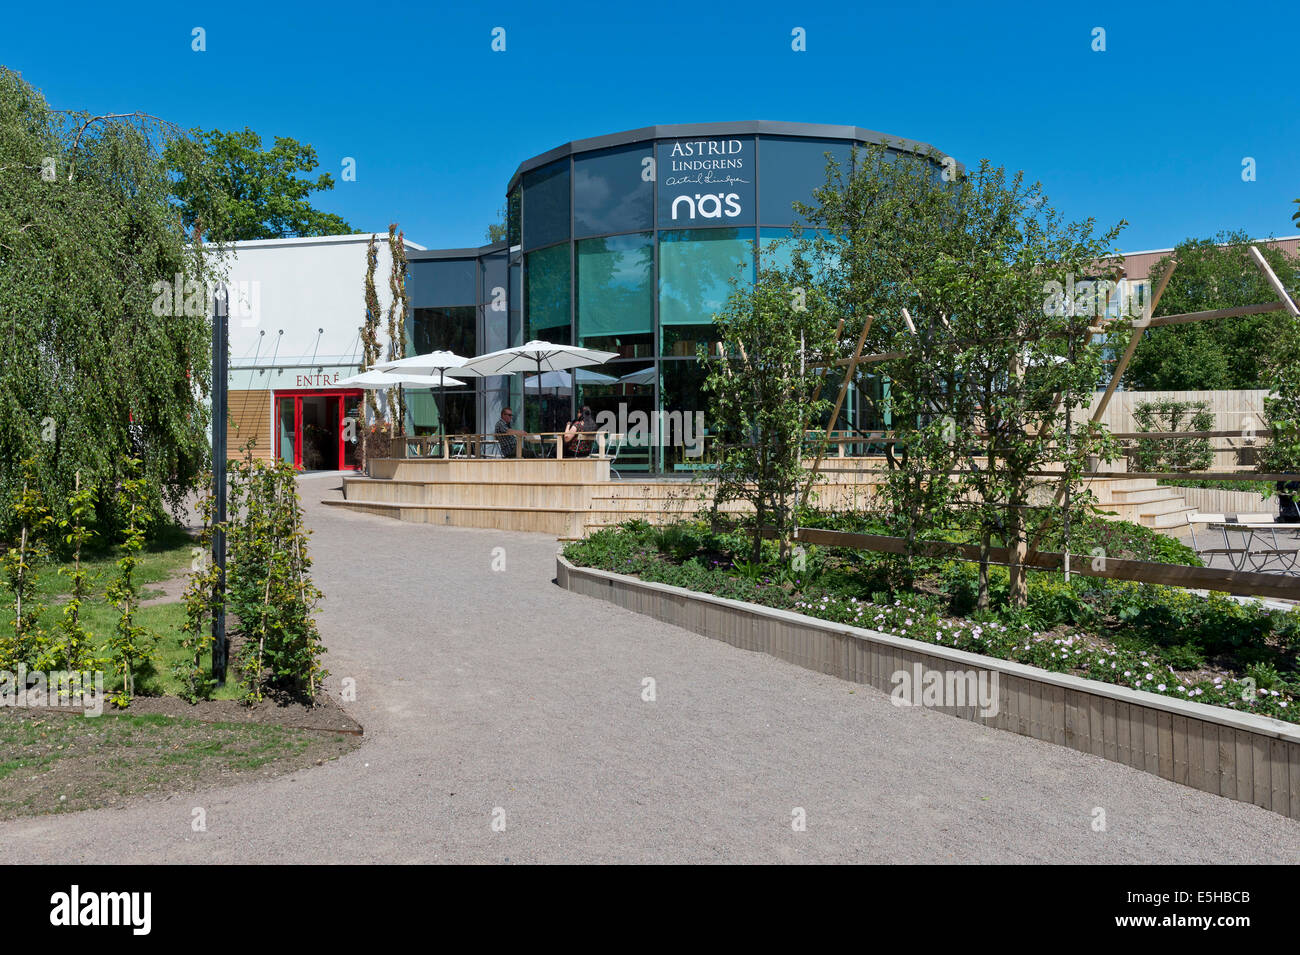 Information and Cultural centre Astrid Lindgren Näs, Vimmerby, Smaland, Sweden - Stock Image